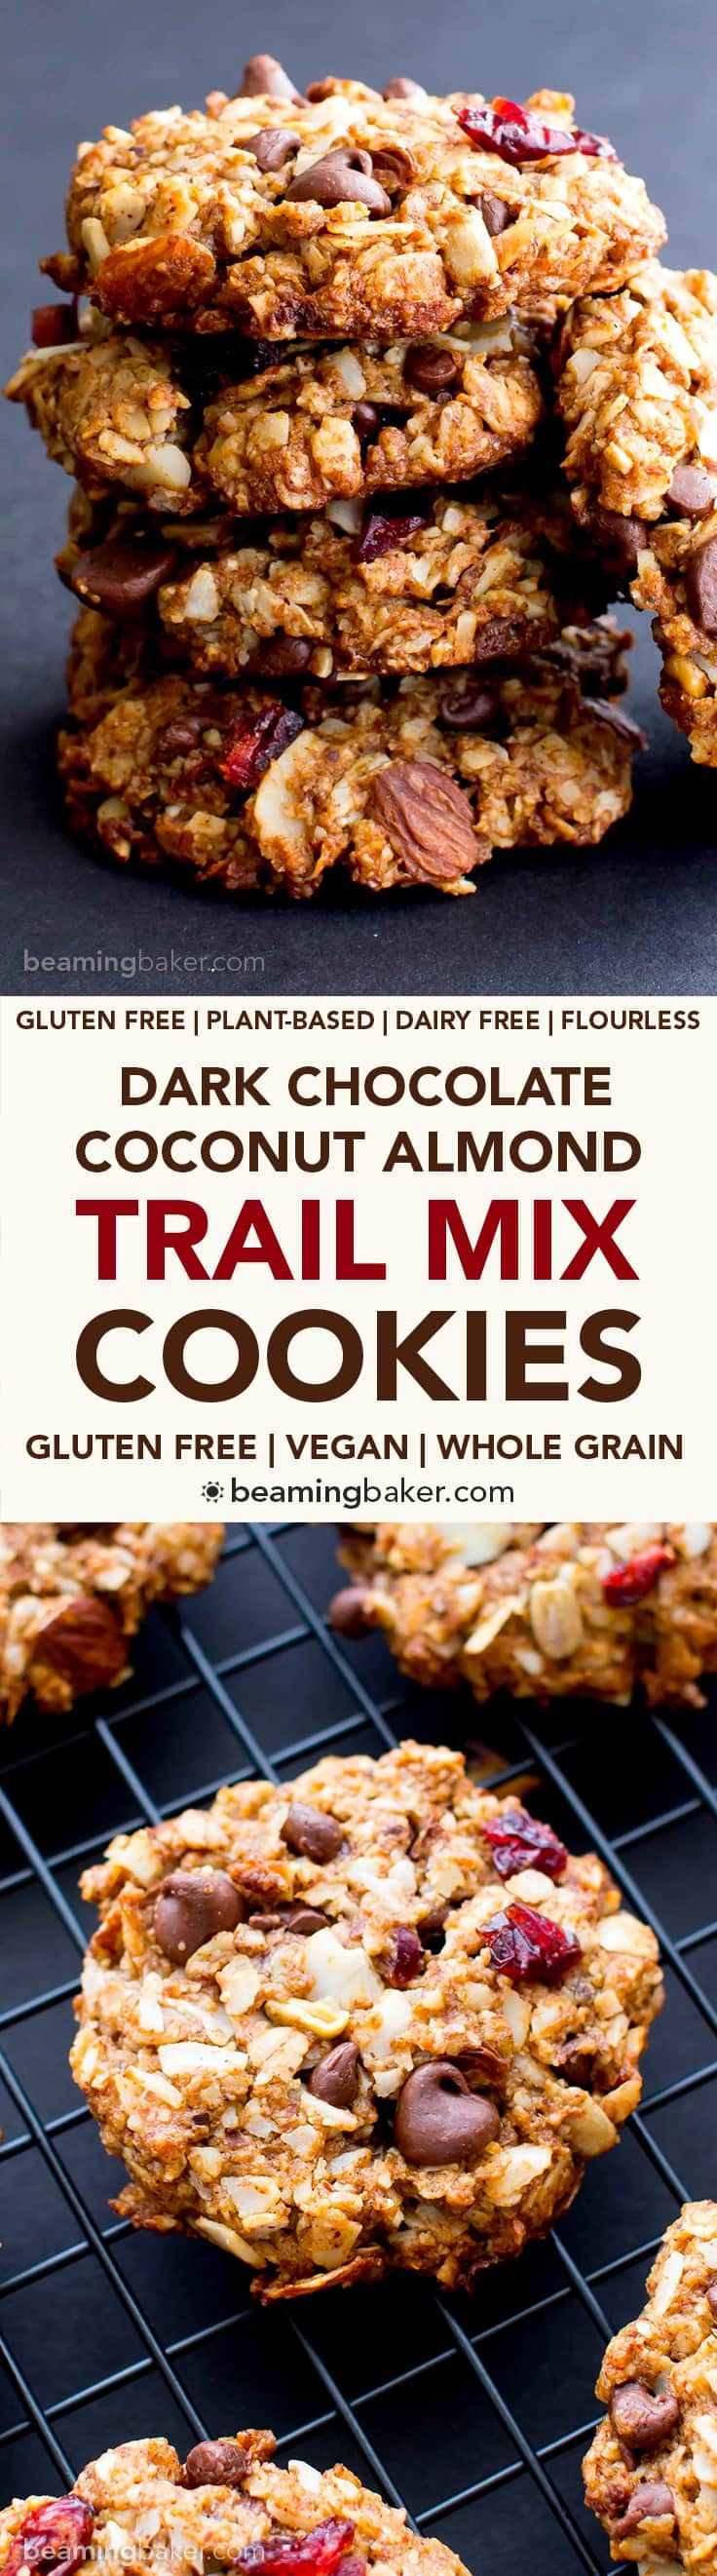 Dark Chocolate Almond Coconut Trail Mix Cookies (V, GF, DF): an easy recipe for deliciously textured chewy trail mix cookies bursting with chocolate, almond and coconut. #Vegan #GlutenFree #DairyFree   BeamingBaker.com